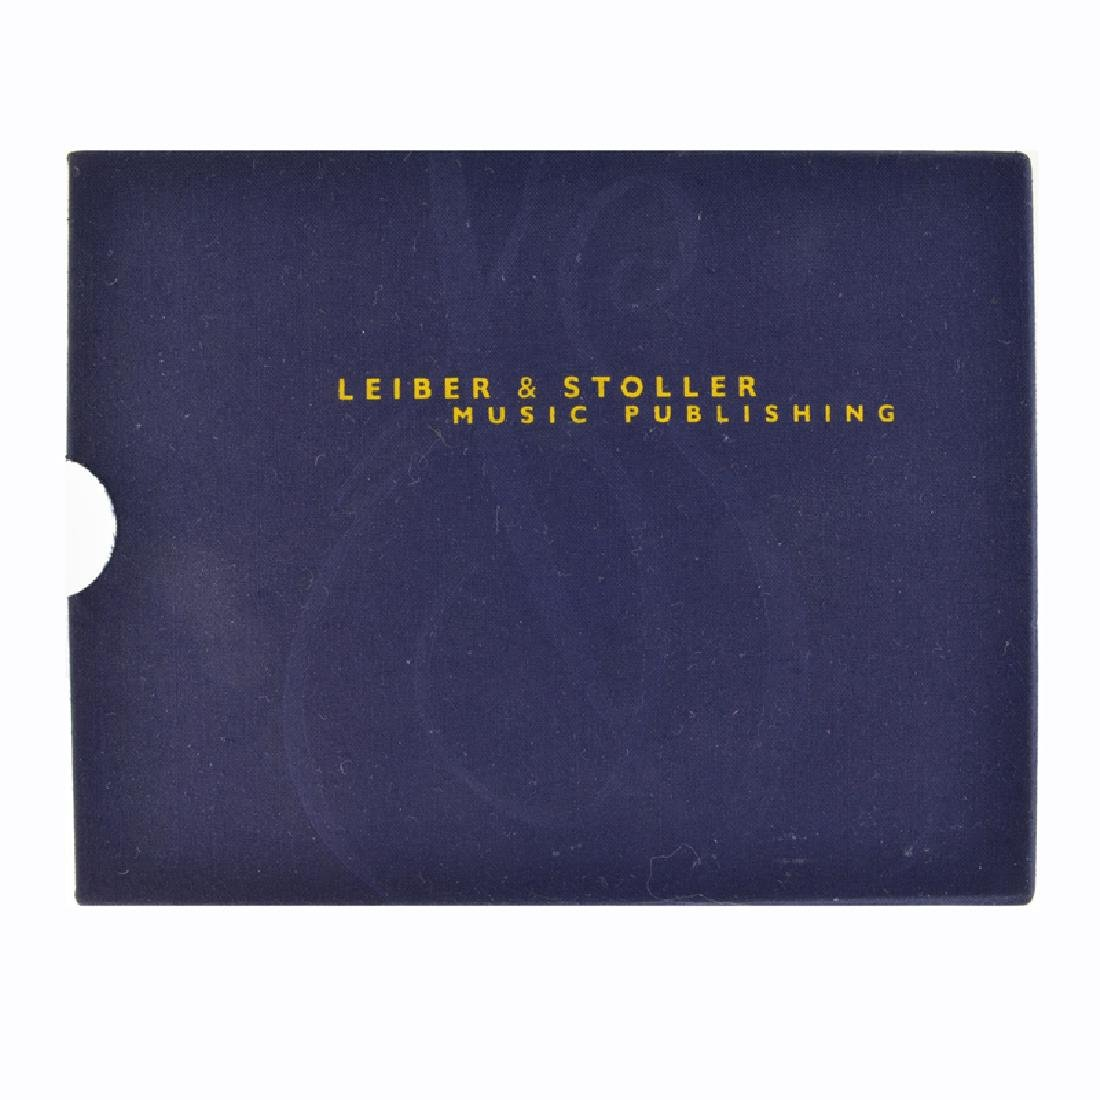 Leiber And Stoller Music Publishing, 6 CDs Box Set